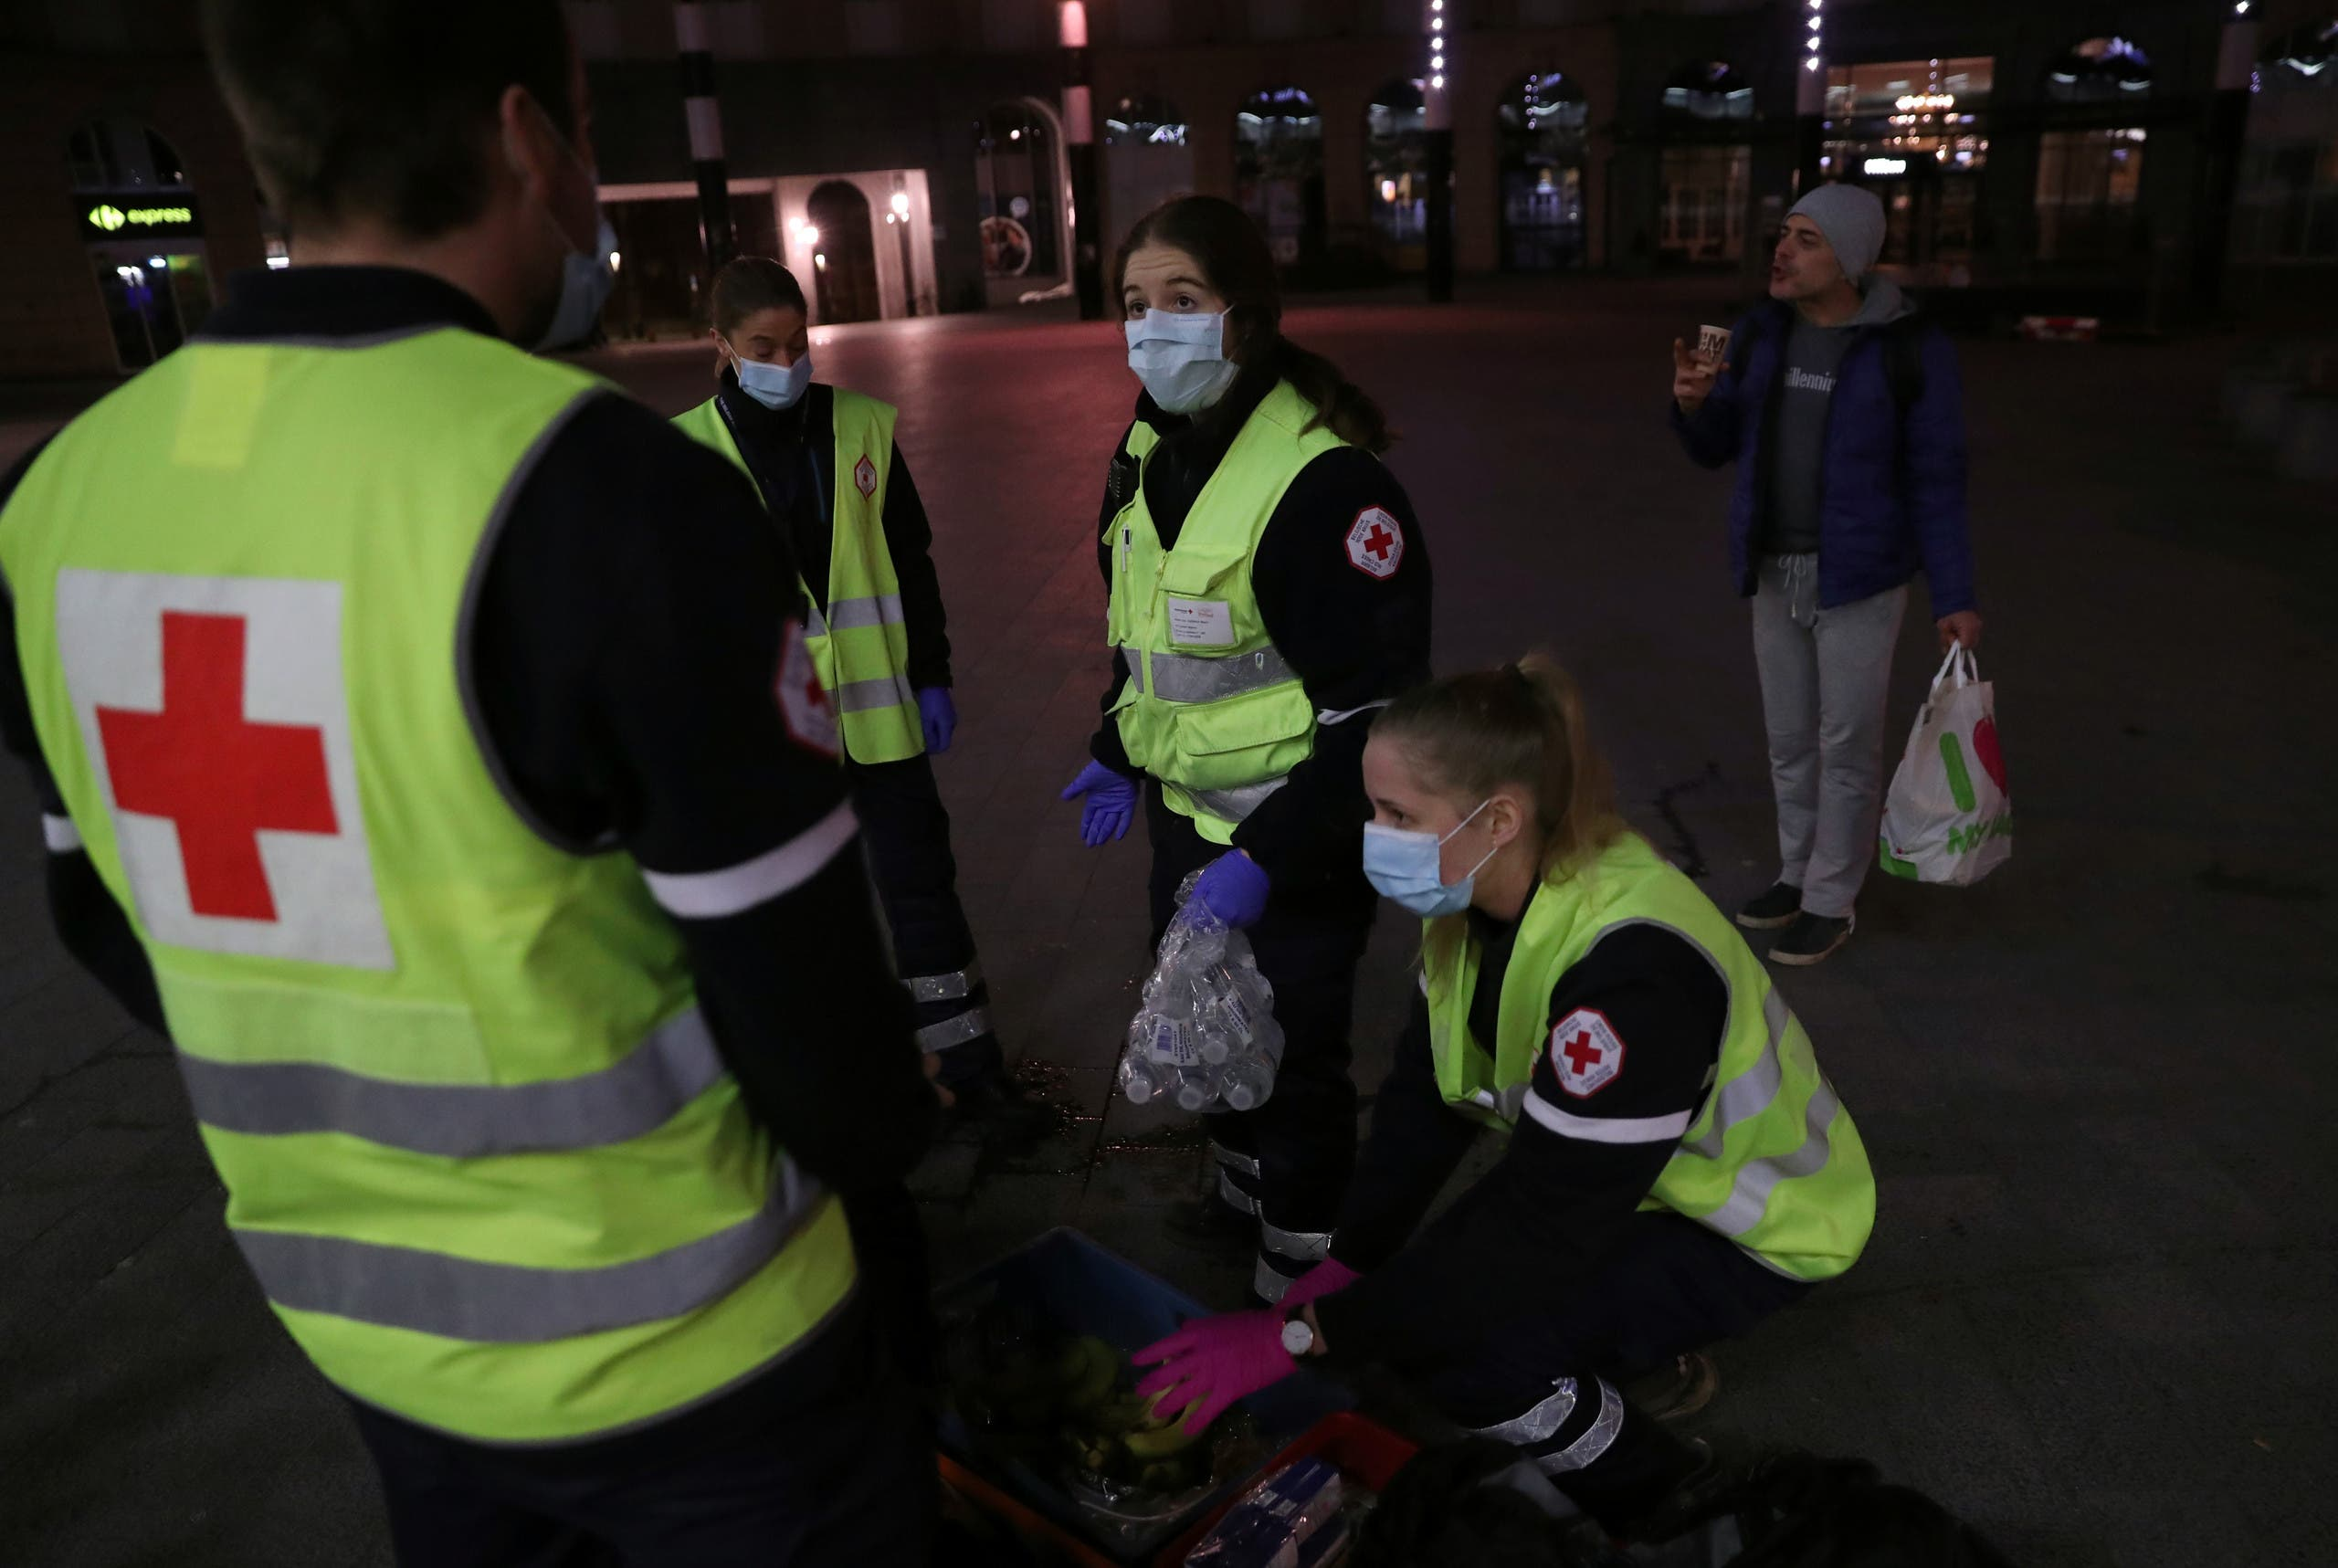 Members of the Belgian Red Cross carry food and drinks for homeless people near Brussels Central Station during the coronavirus lockdown imposed by the Belgian government in an attempt to slow down the coronavirus, in Brussels, Belgium March 25, 2020. (Reuters)